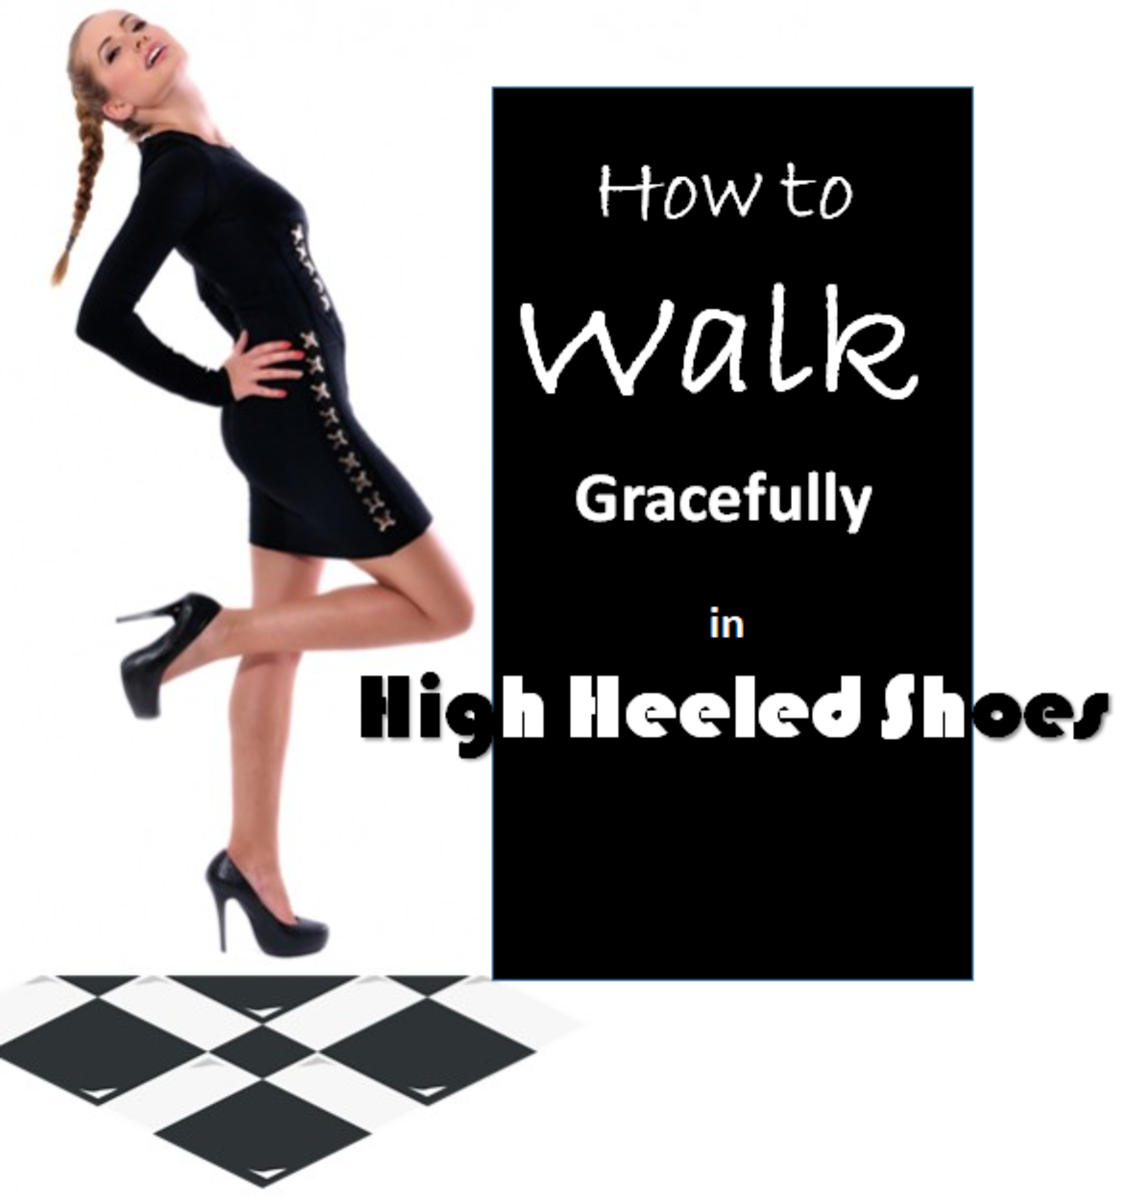 How to Walk Gracefully in High Heeled Shoes | HubPages